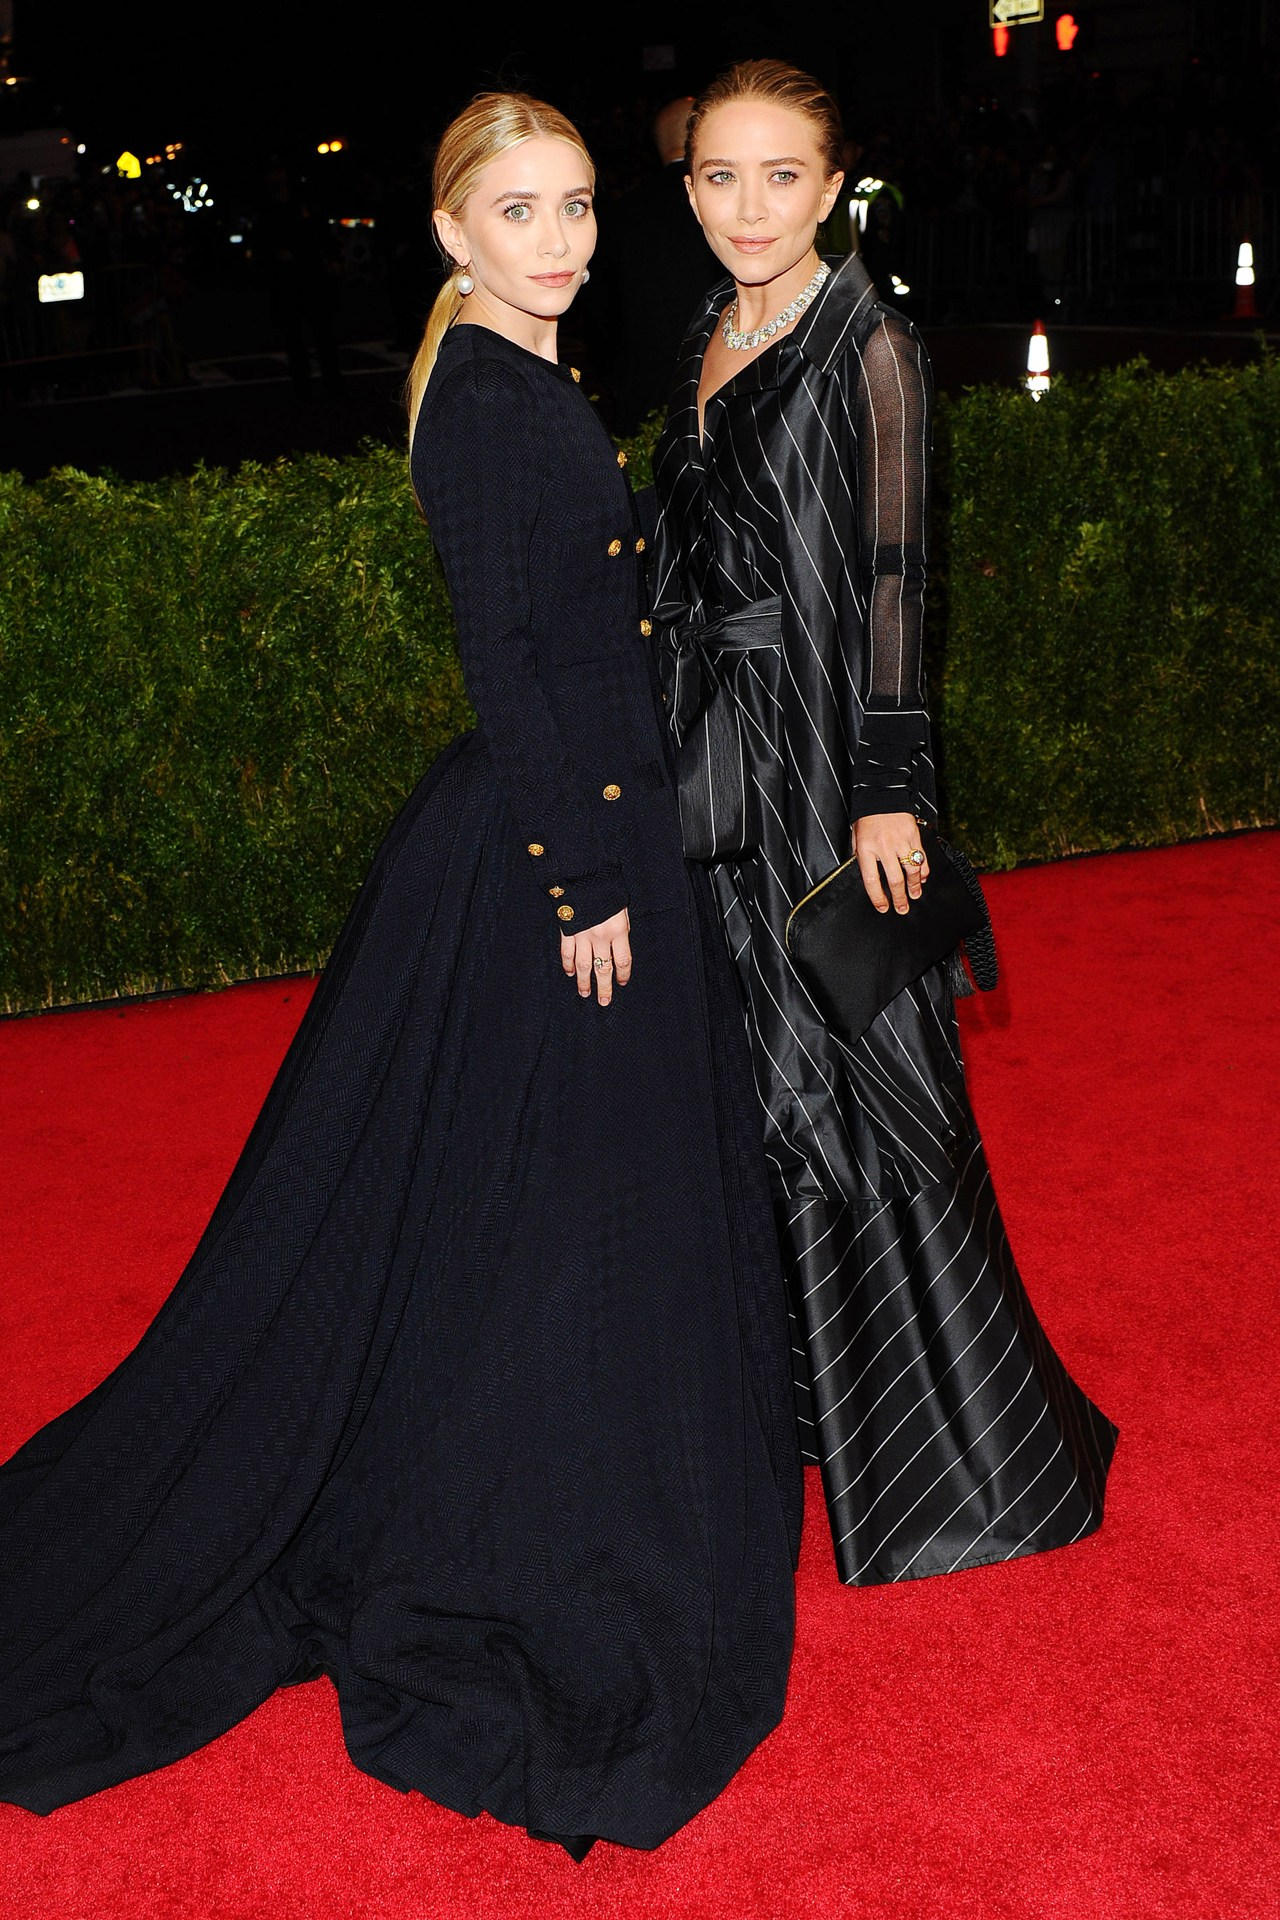 Mary-Kate and Ashley Olsen both wore vintage designs – Ferre and Chanel